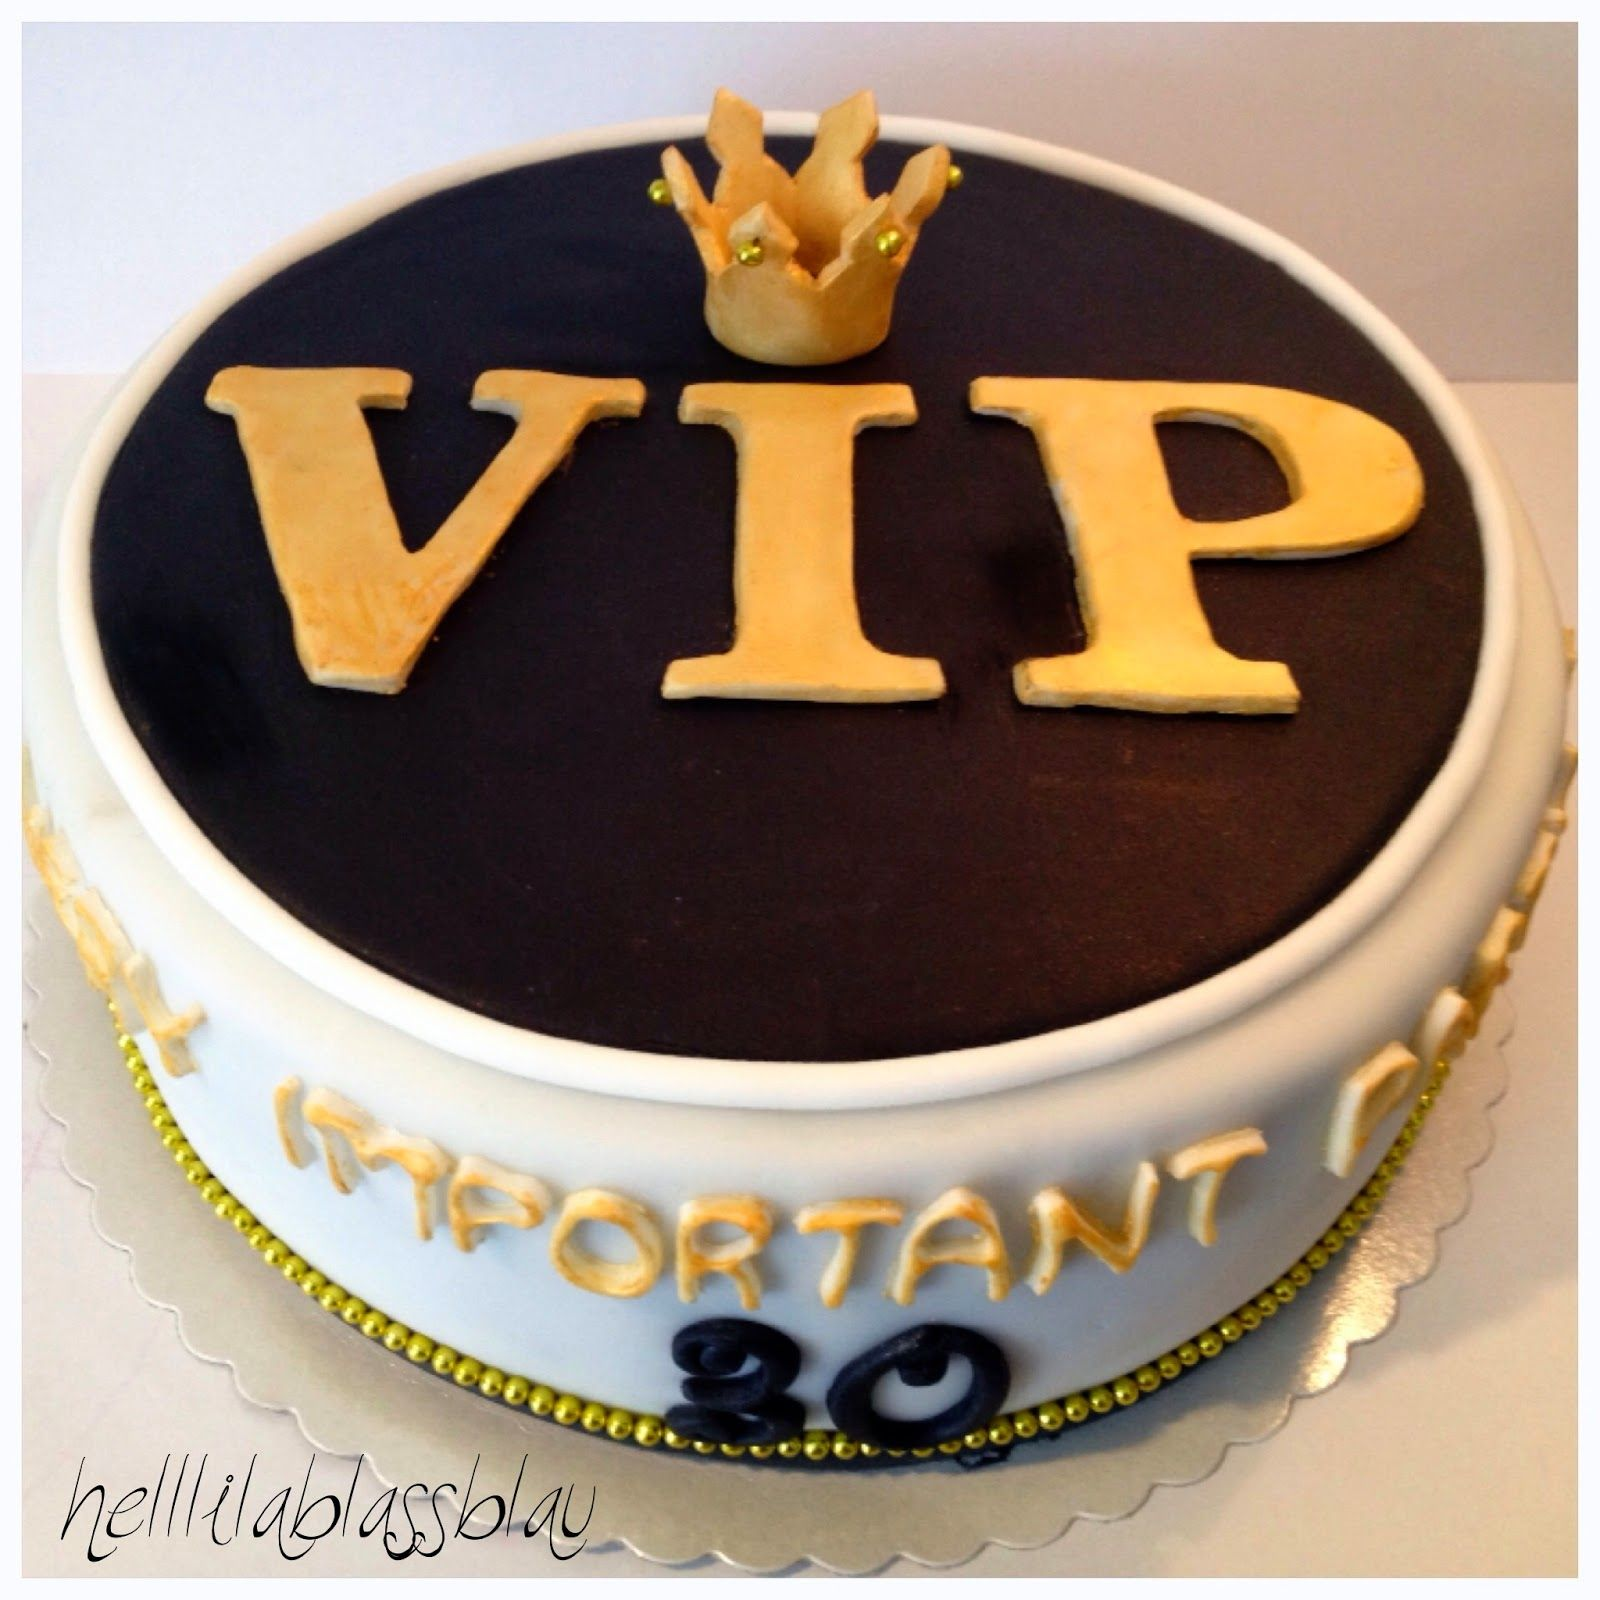 vip torte zum 30 geburtstag very important party motivtorten pinterest motivtorten. Black Bedroom Furniture Sets. Home Design Ideas